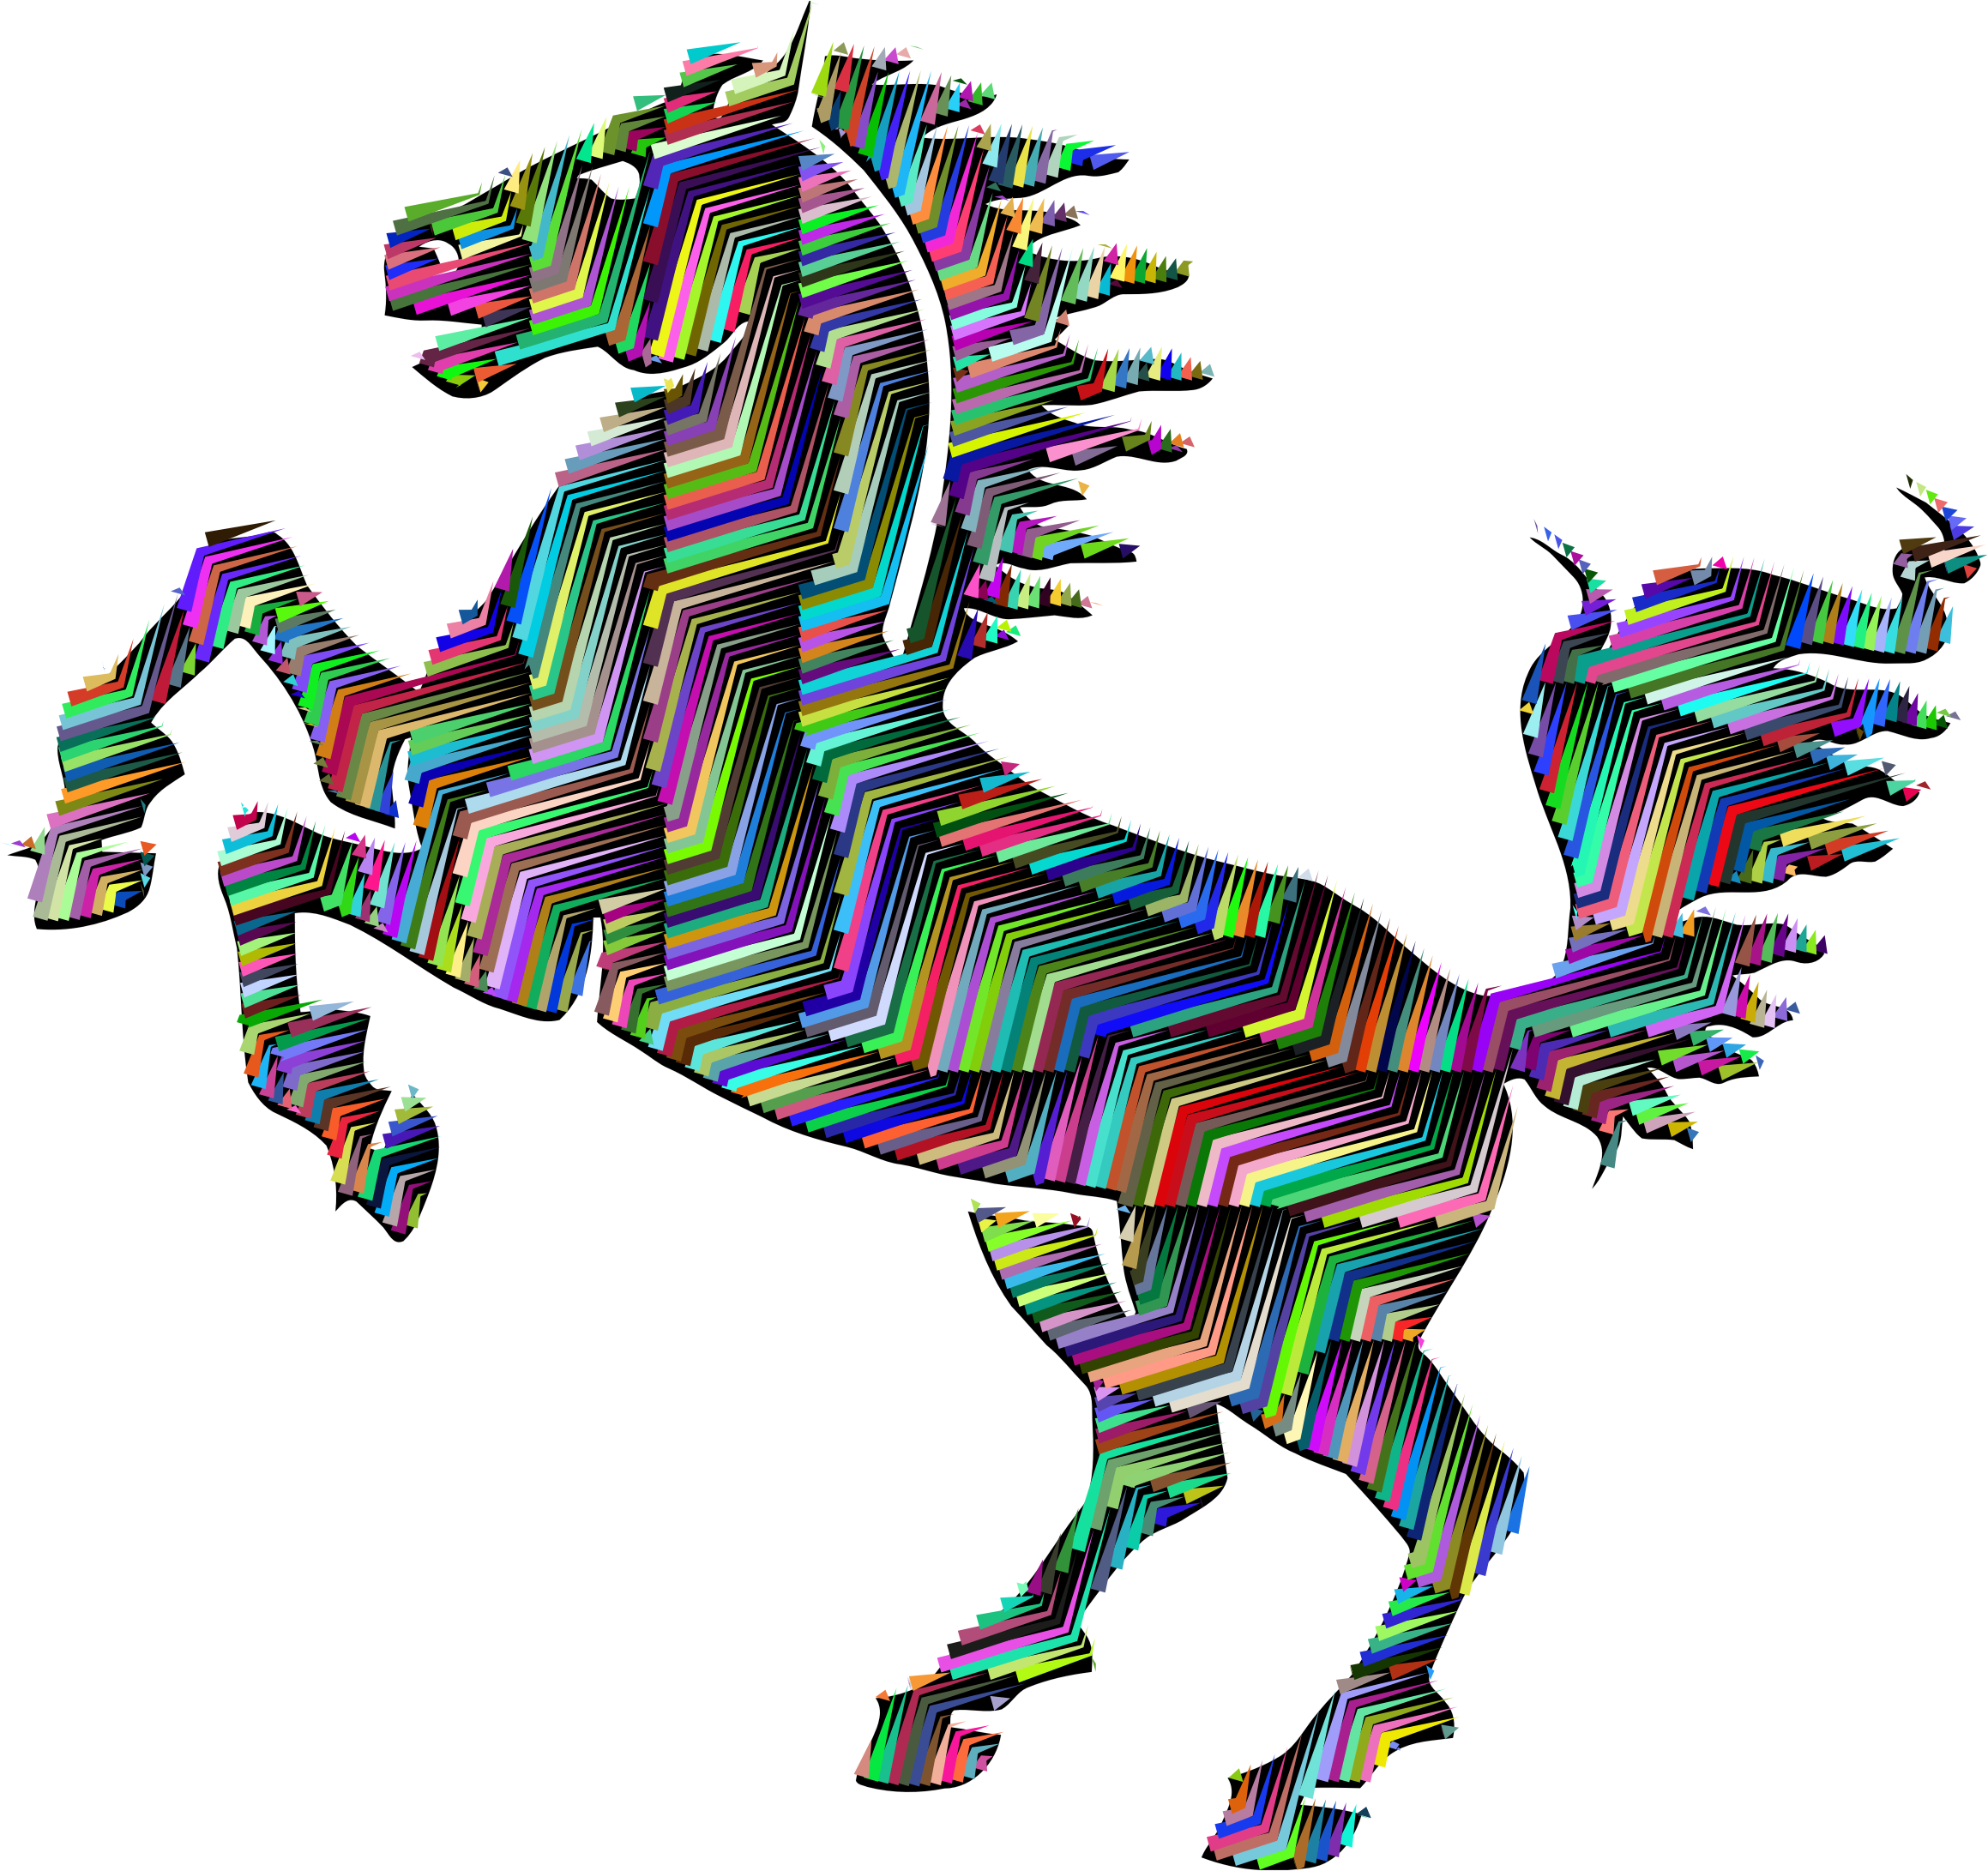 Abstract animal png. Prismatic horse silhouette line